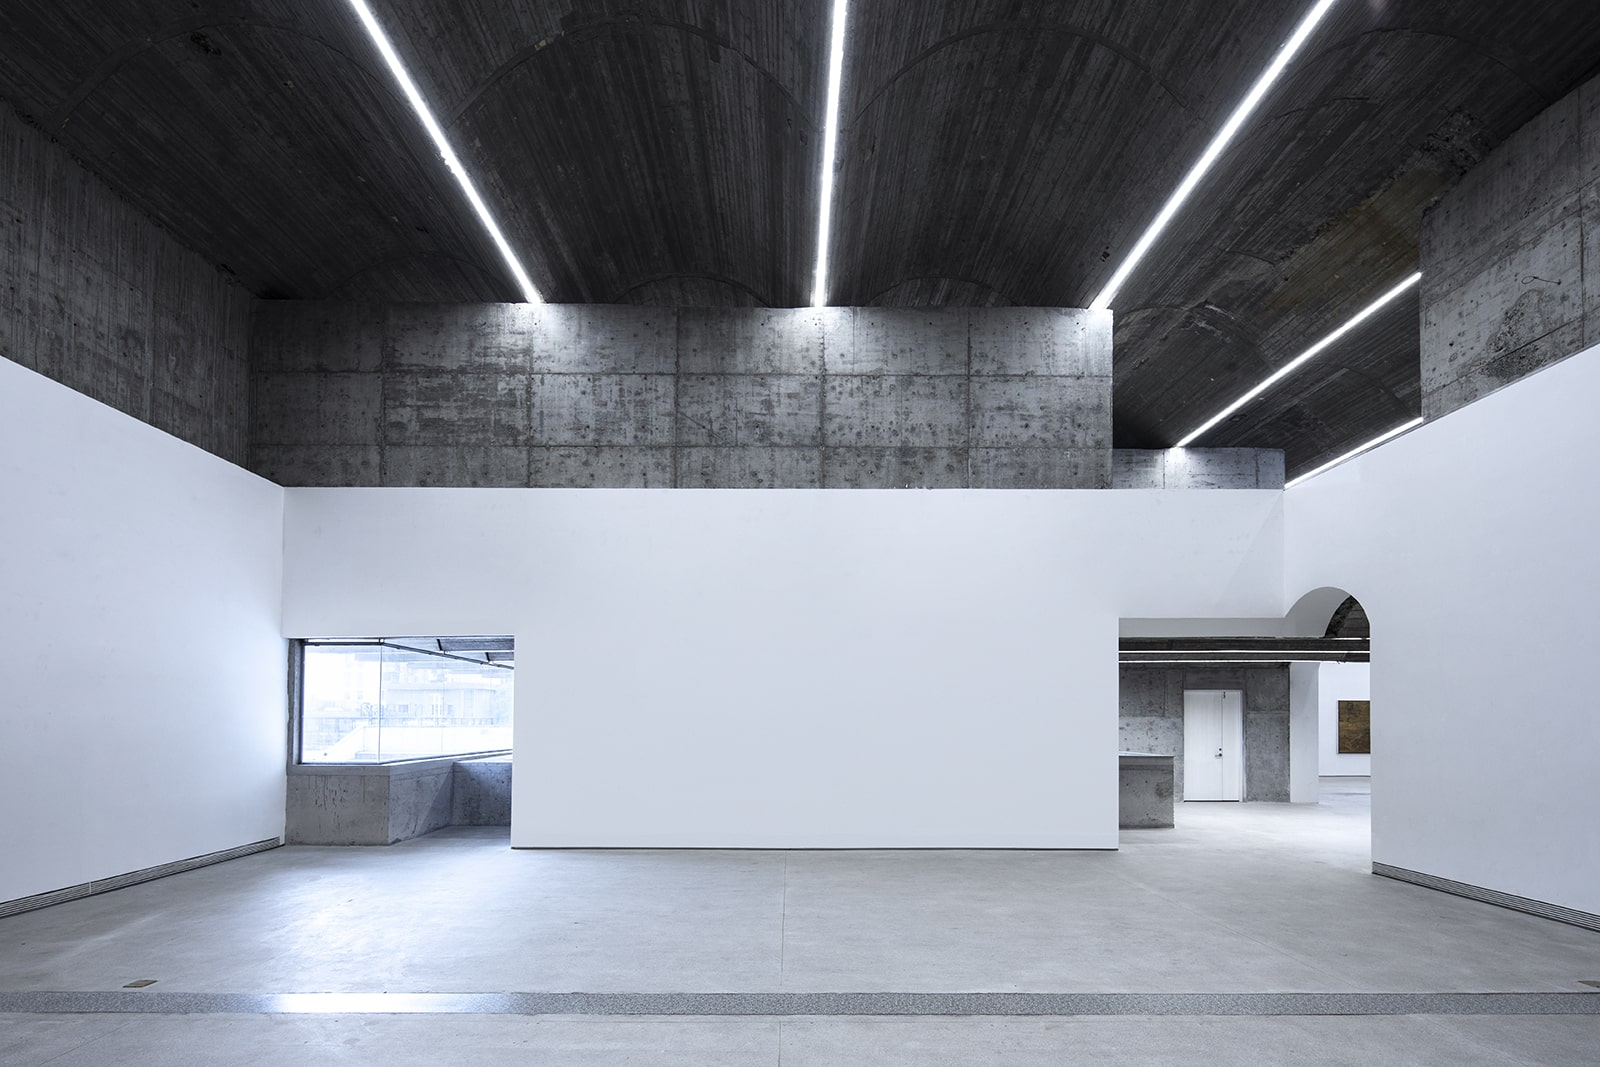 Taizhou Contemporary Art Museum  - 7.2 51